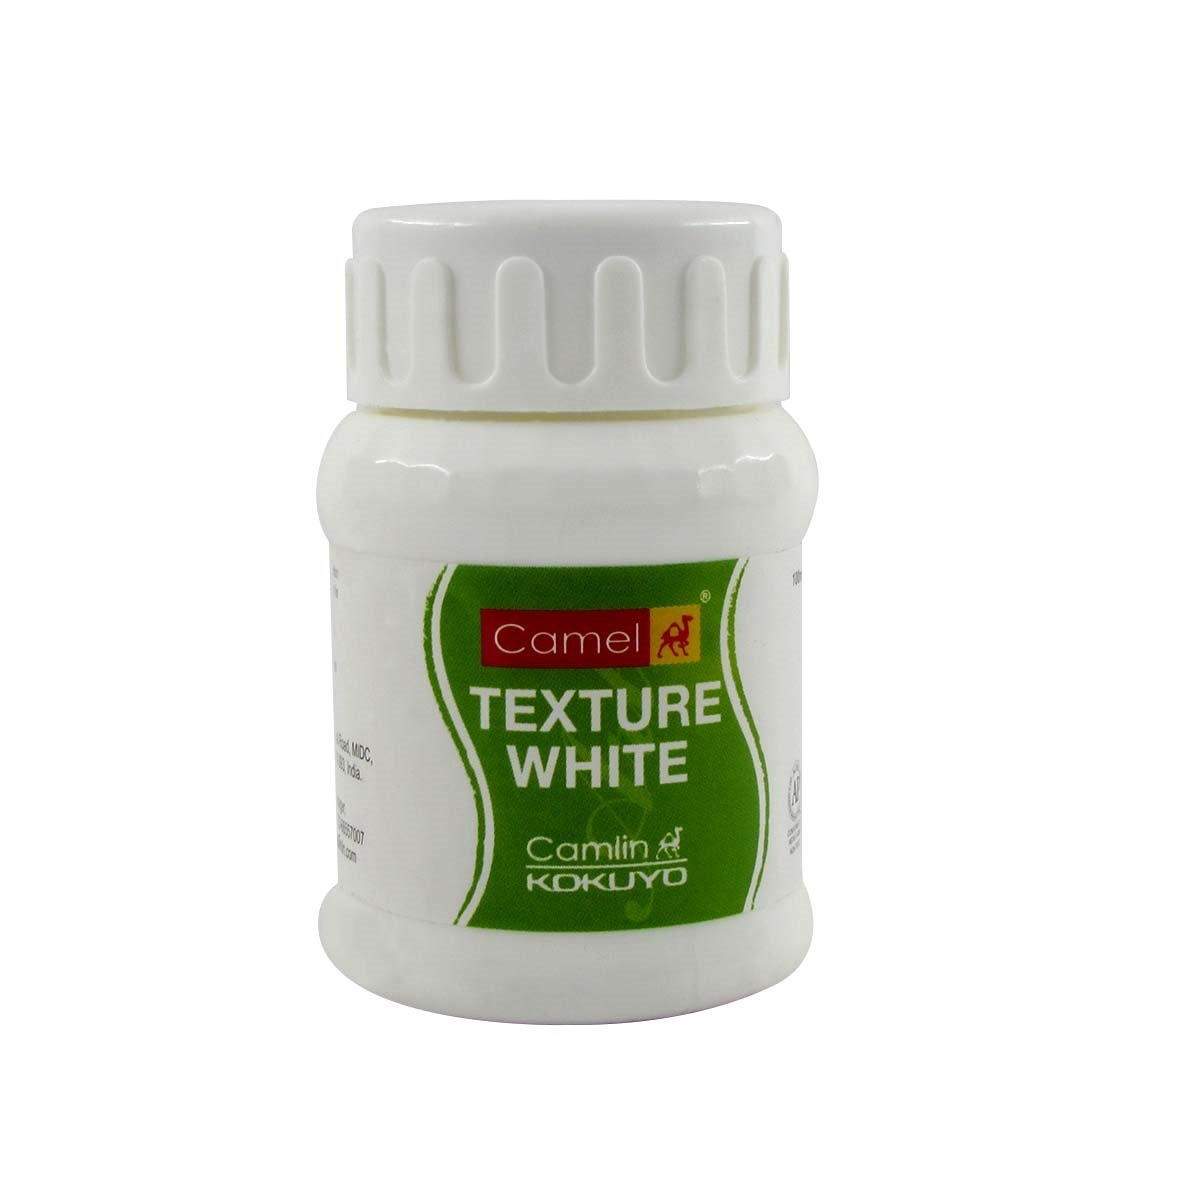 Camel Texture White 100ml